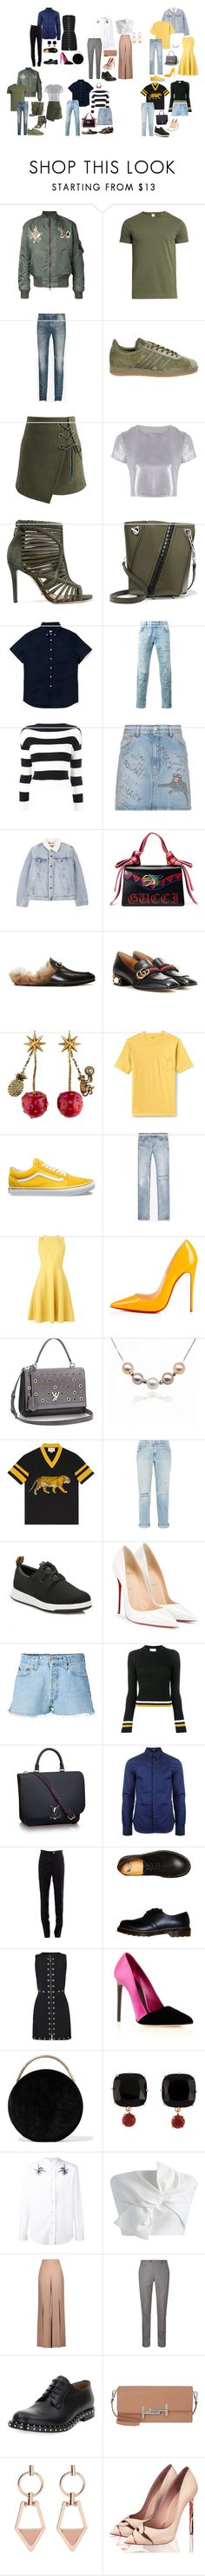 """""""me and aghhhhh"""" by yusufbudiman on Polyvore featuring Sørensen, Maison Margiela, adidas, Chicwish, Related, Schutz, Proenza Schouler, Gucci, Boutique Moschino and Levi's"""